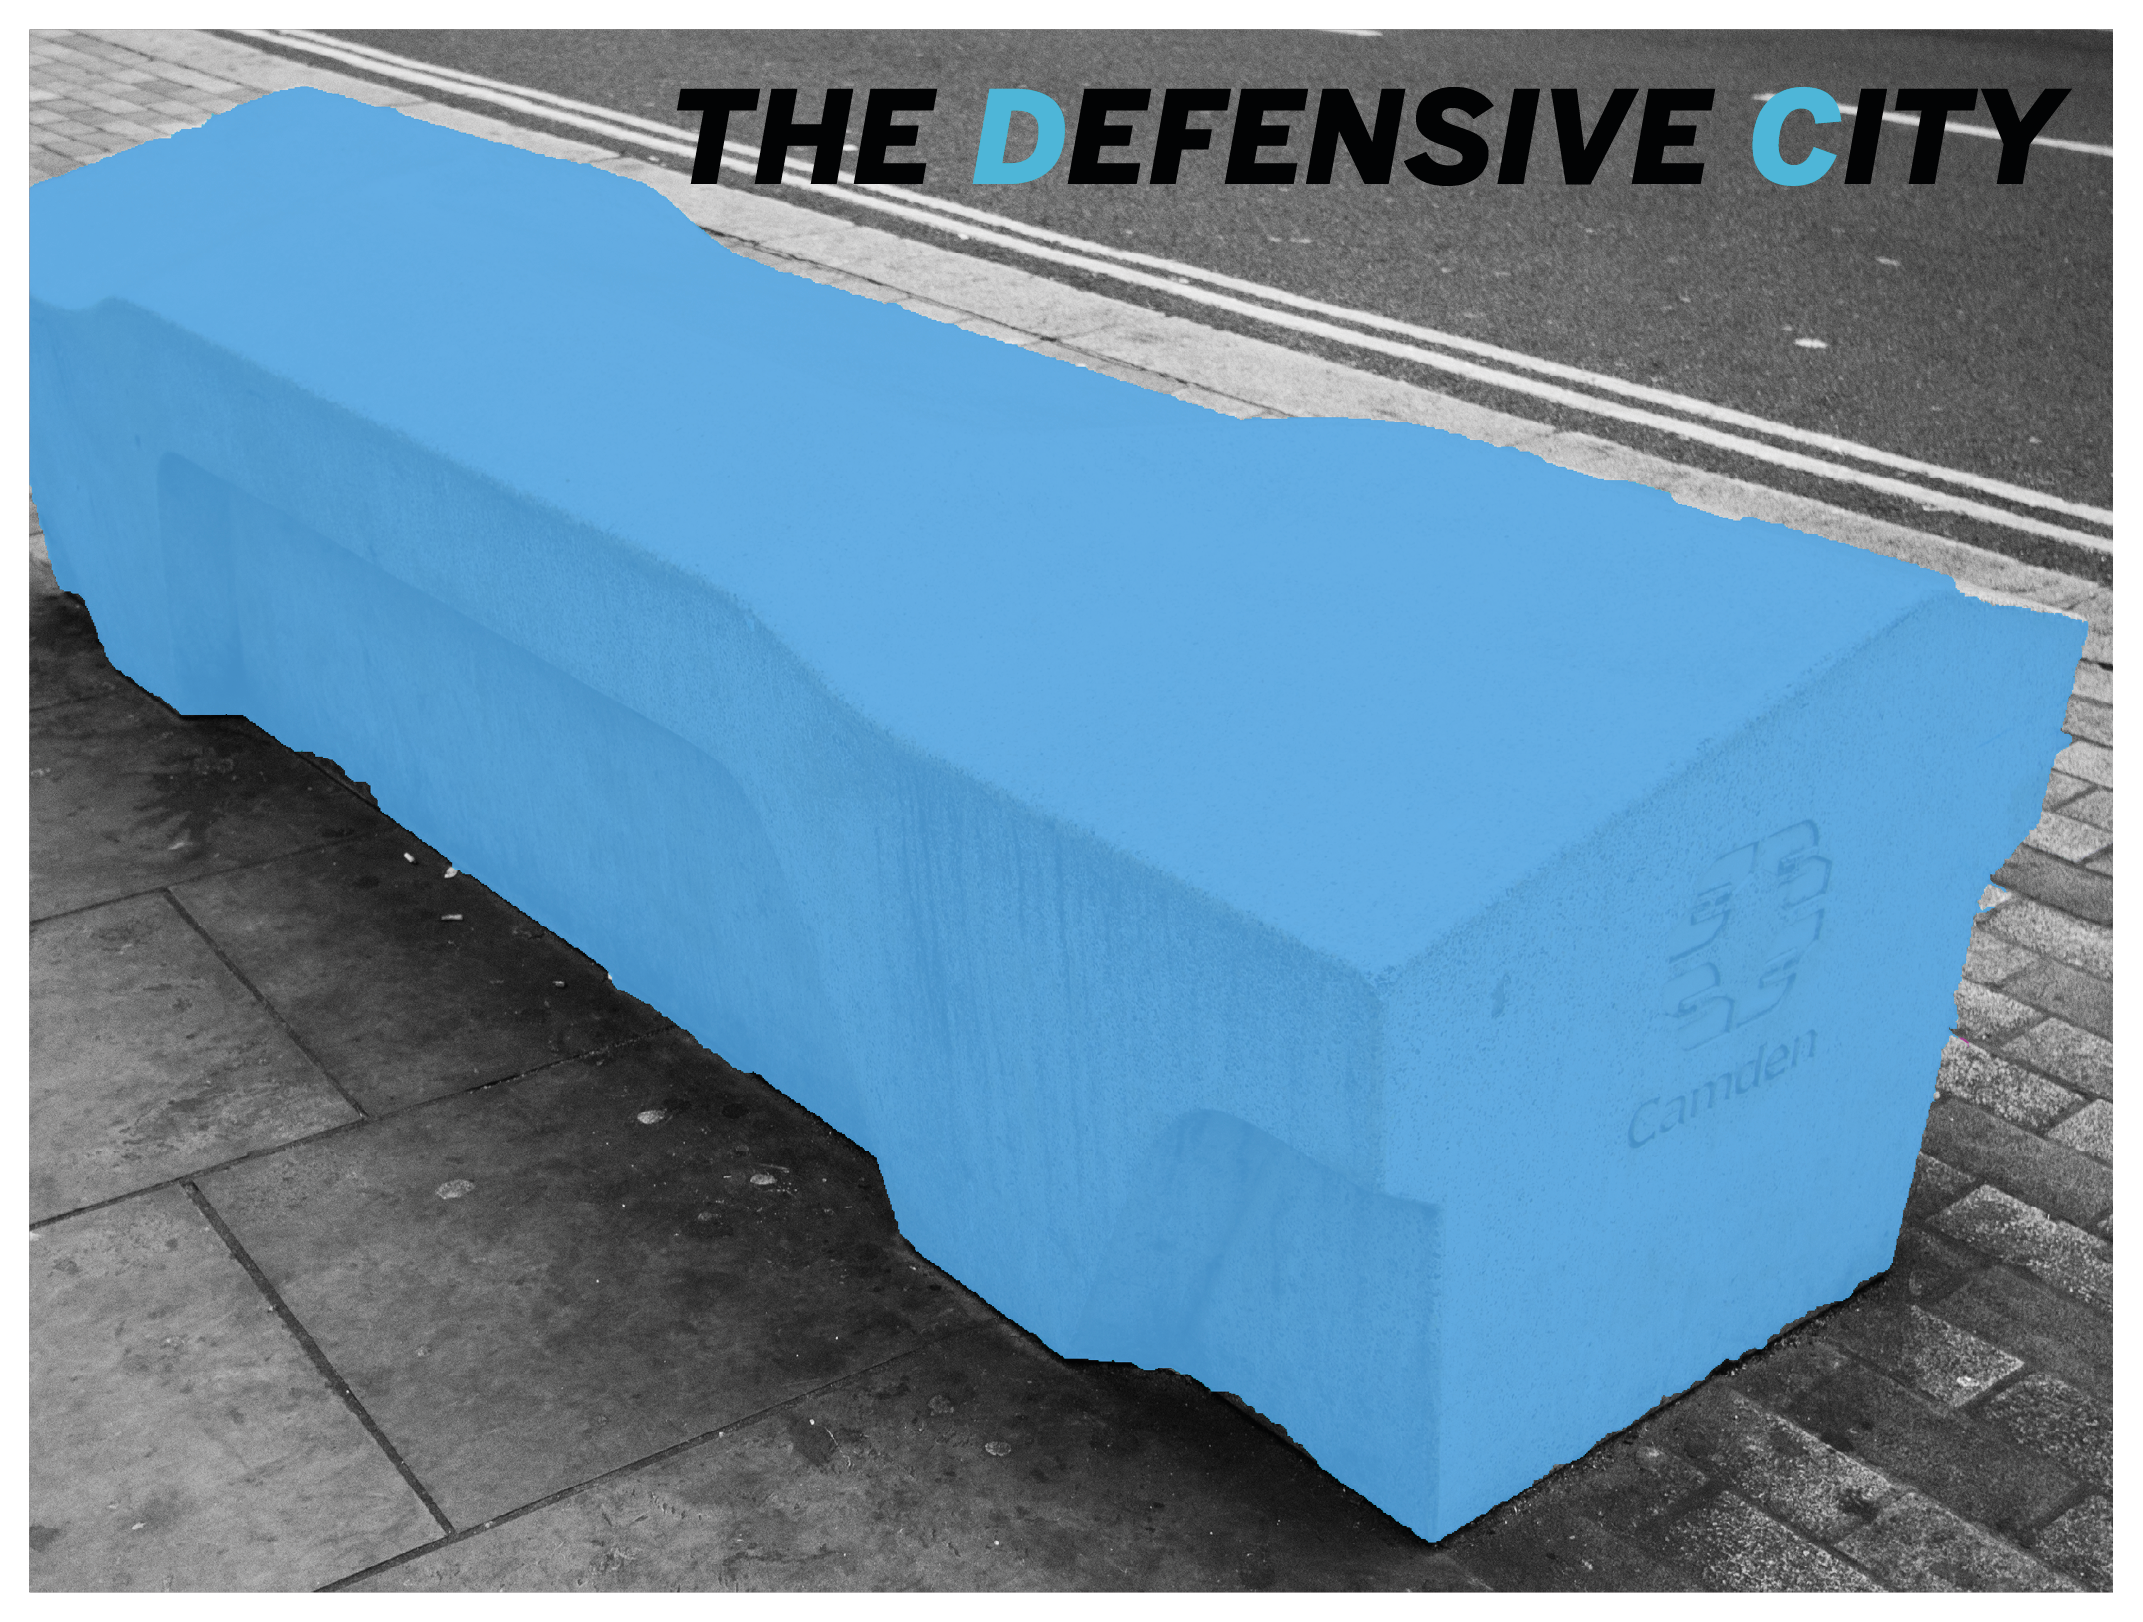 The Defensive City